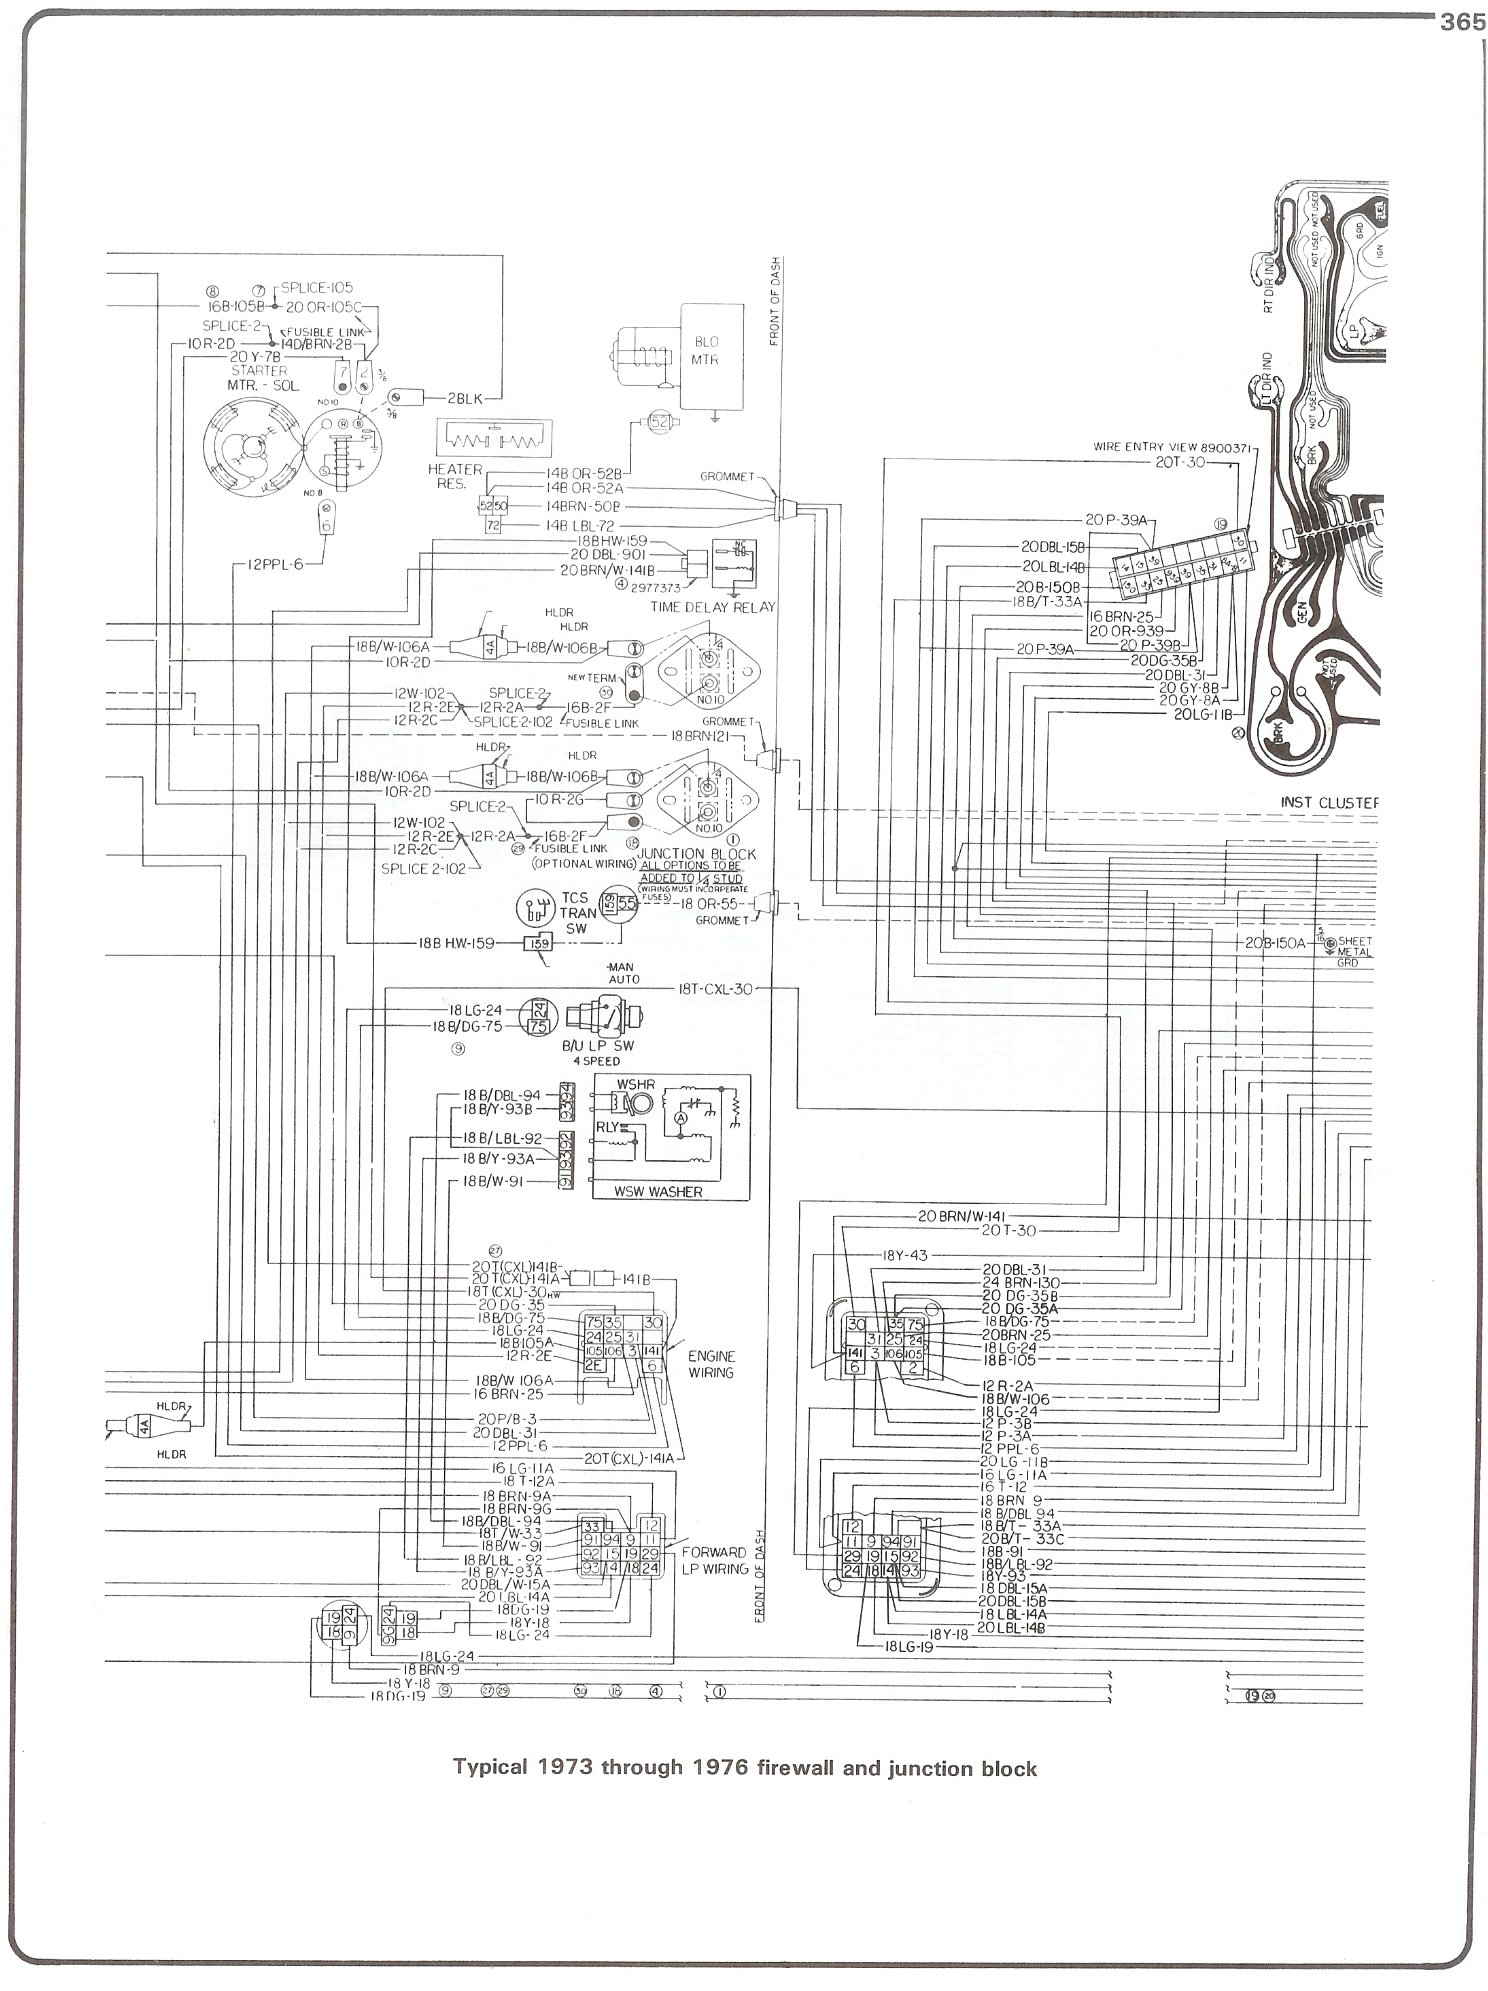 hight resolution of complete 73 87 wiring diagrams gmc wiring diagram 73 76 firewall junction